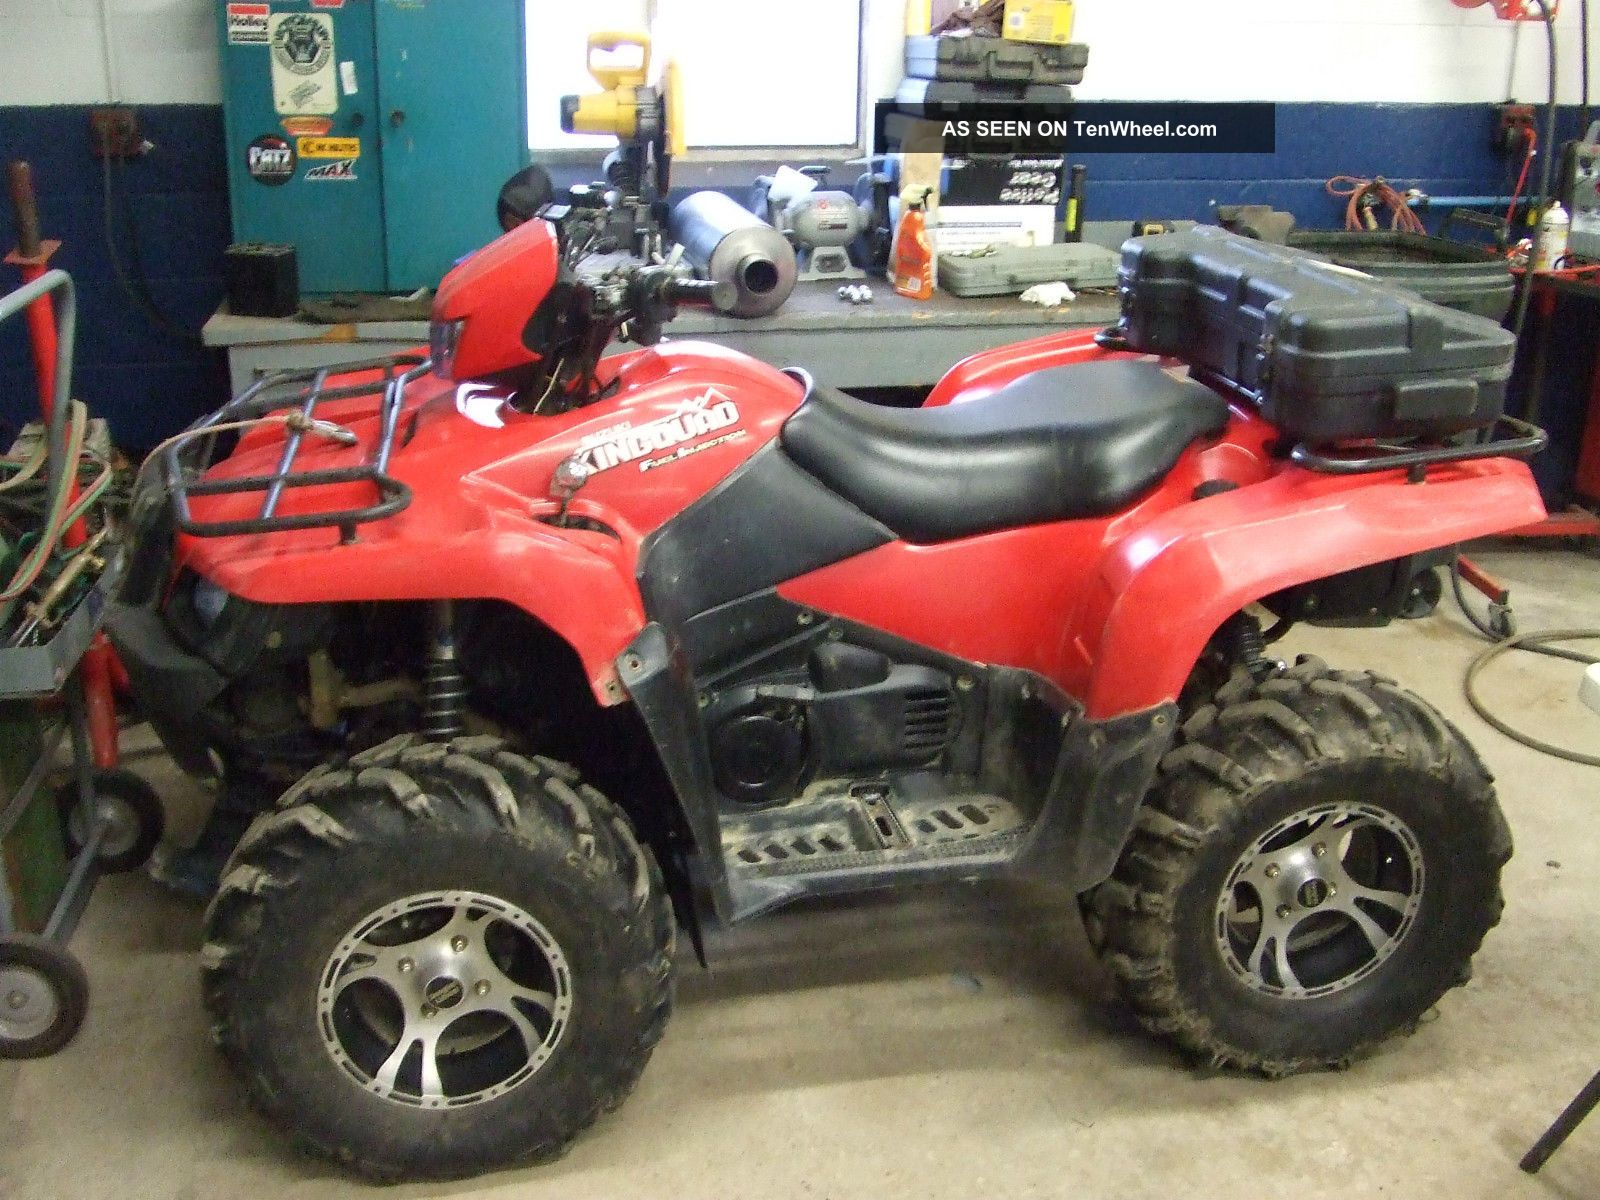 2005 Suzuki King Quad Suzuki photo